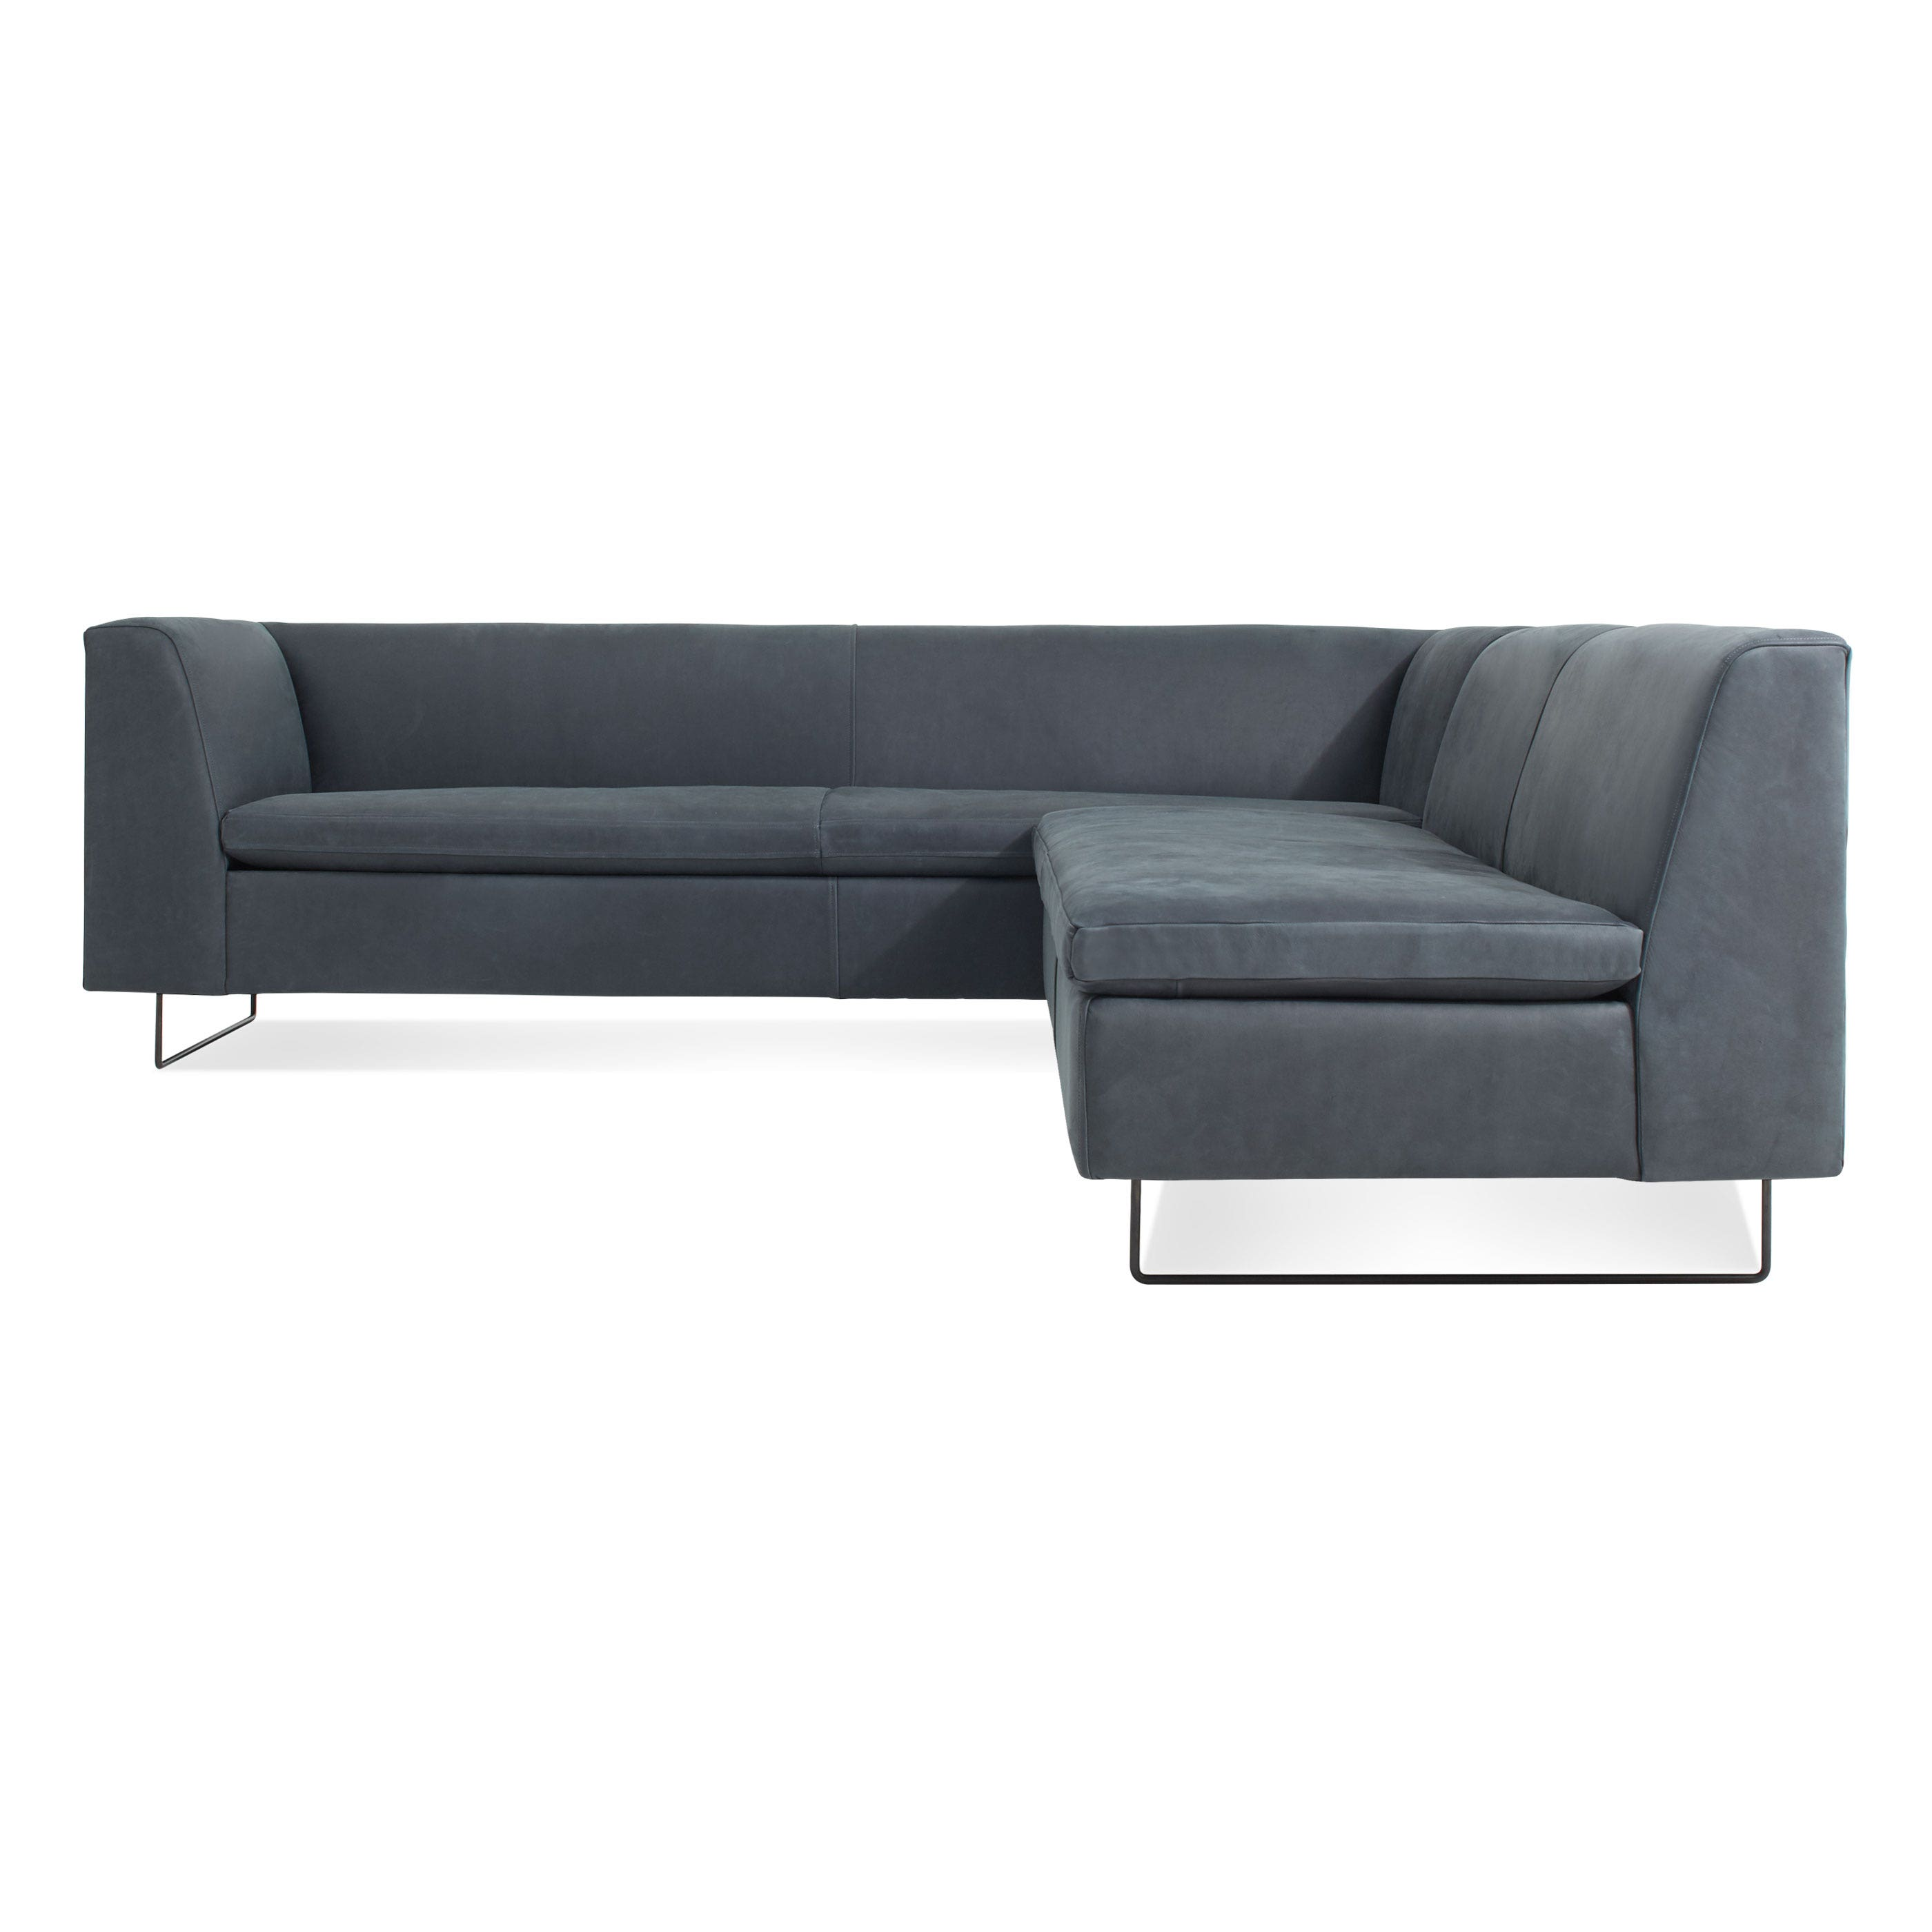 Bonnie and Clyde Modern Leather Sectional Sofa